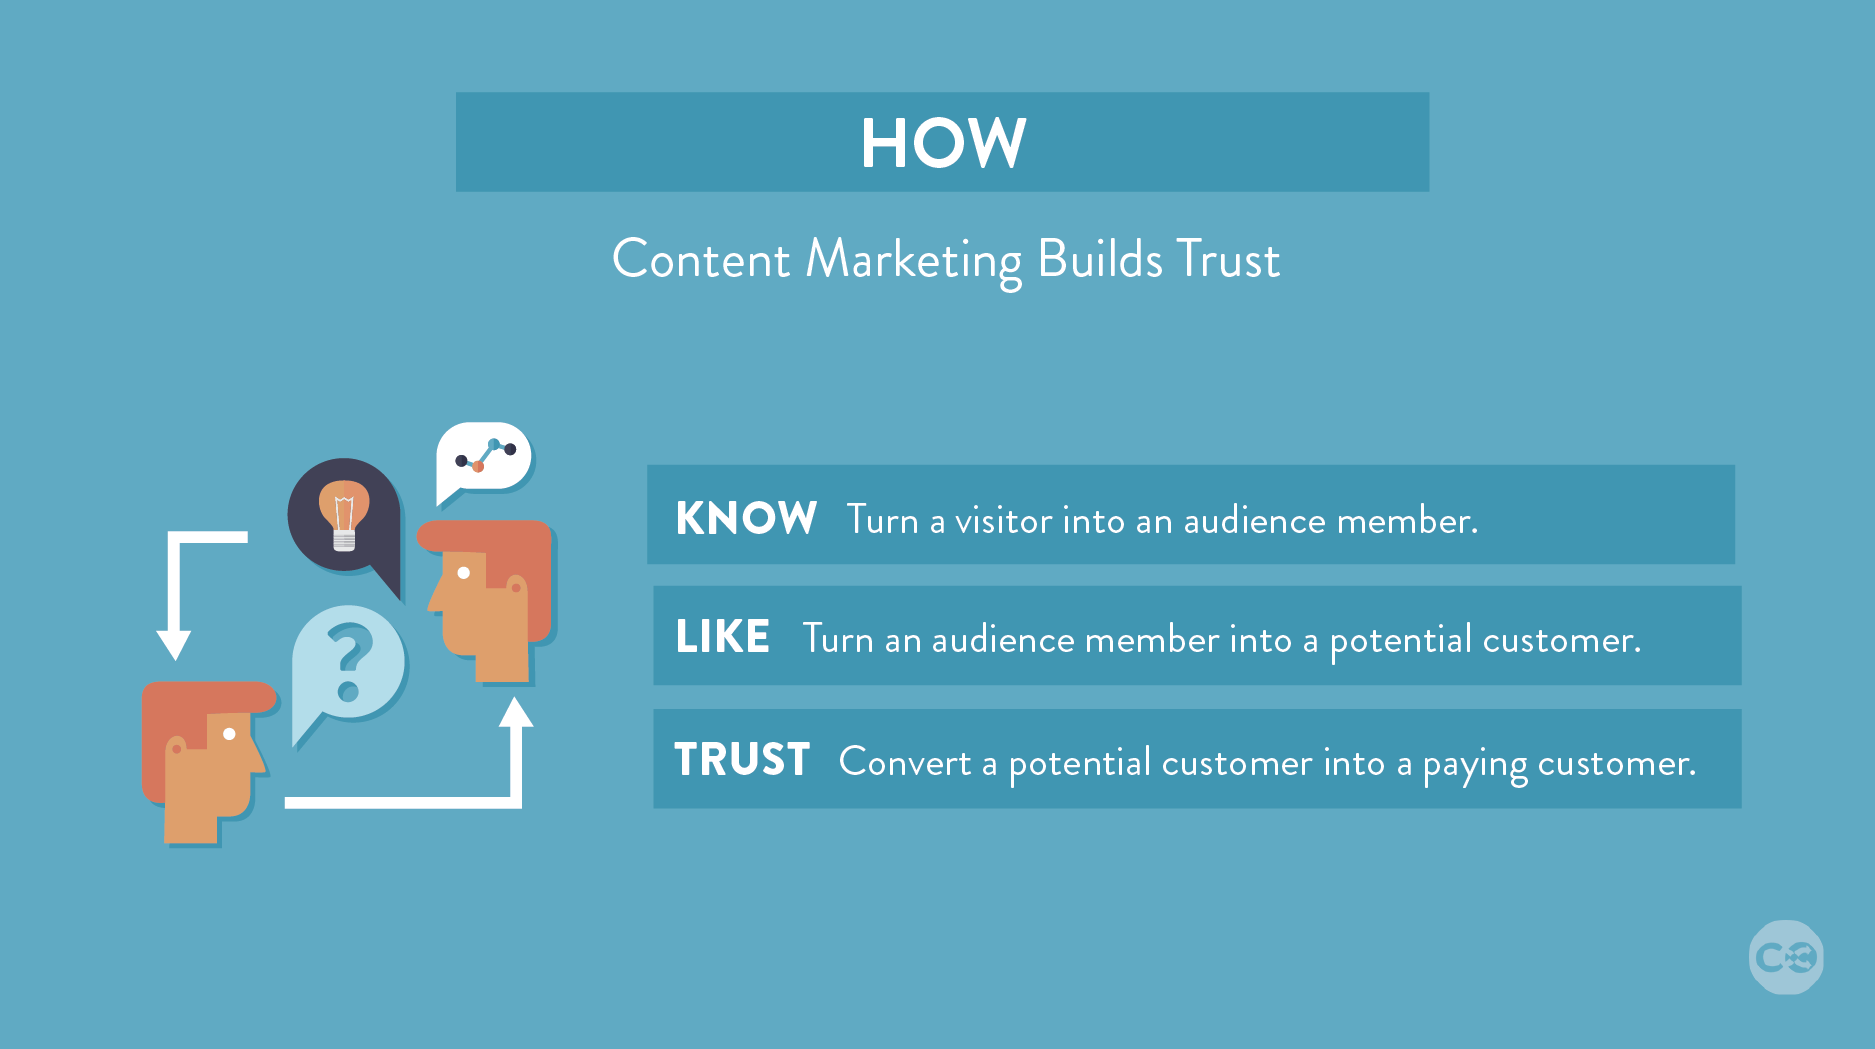 use a content marketing editorial calendar to build trust